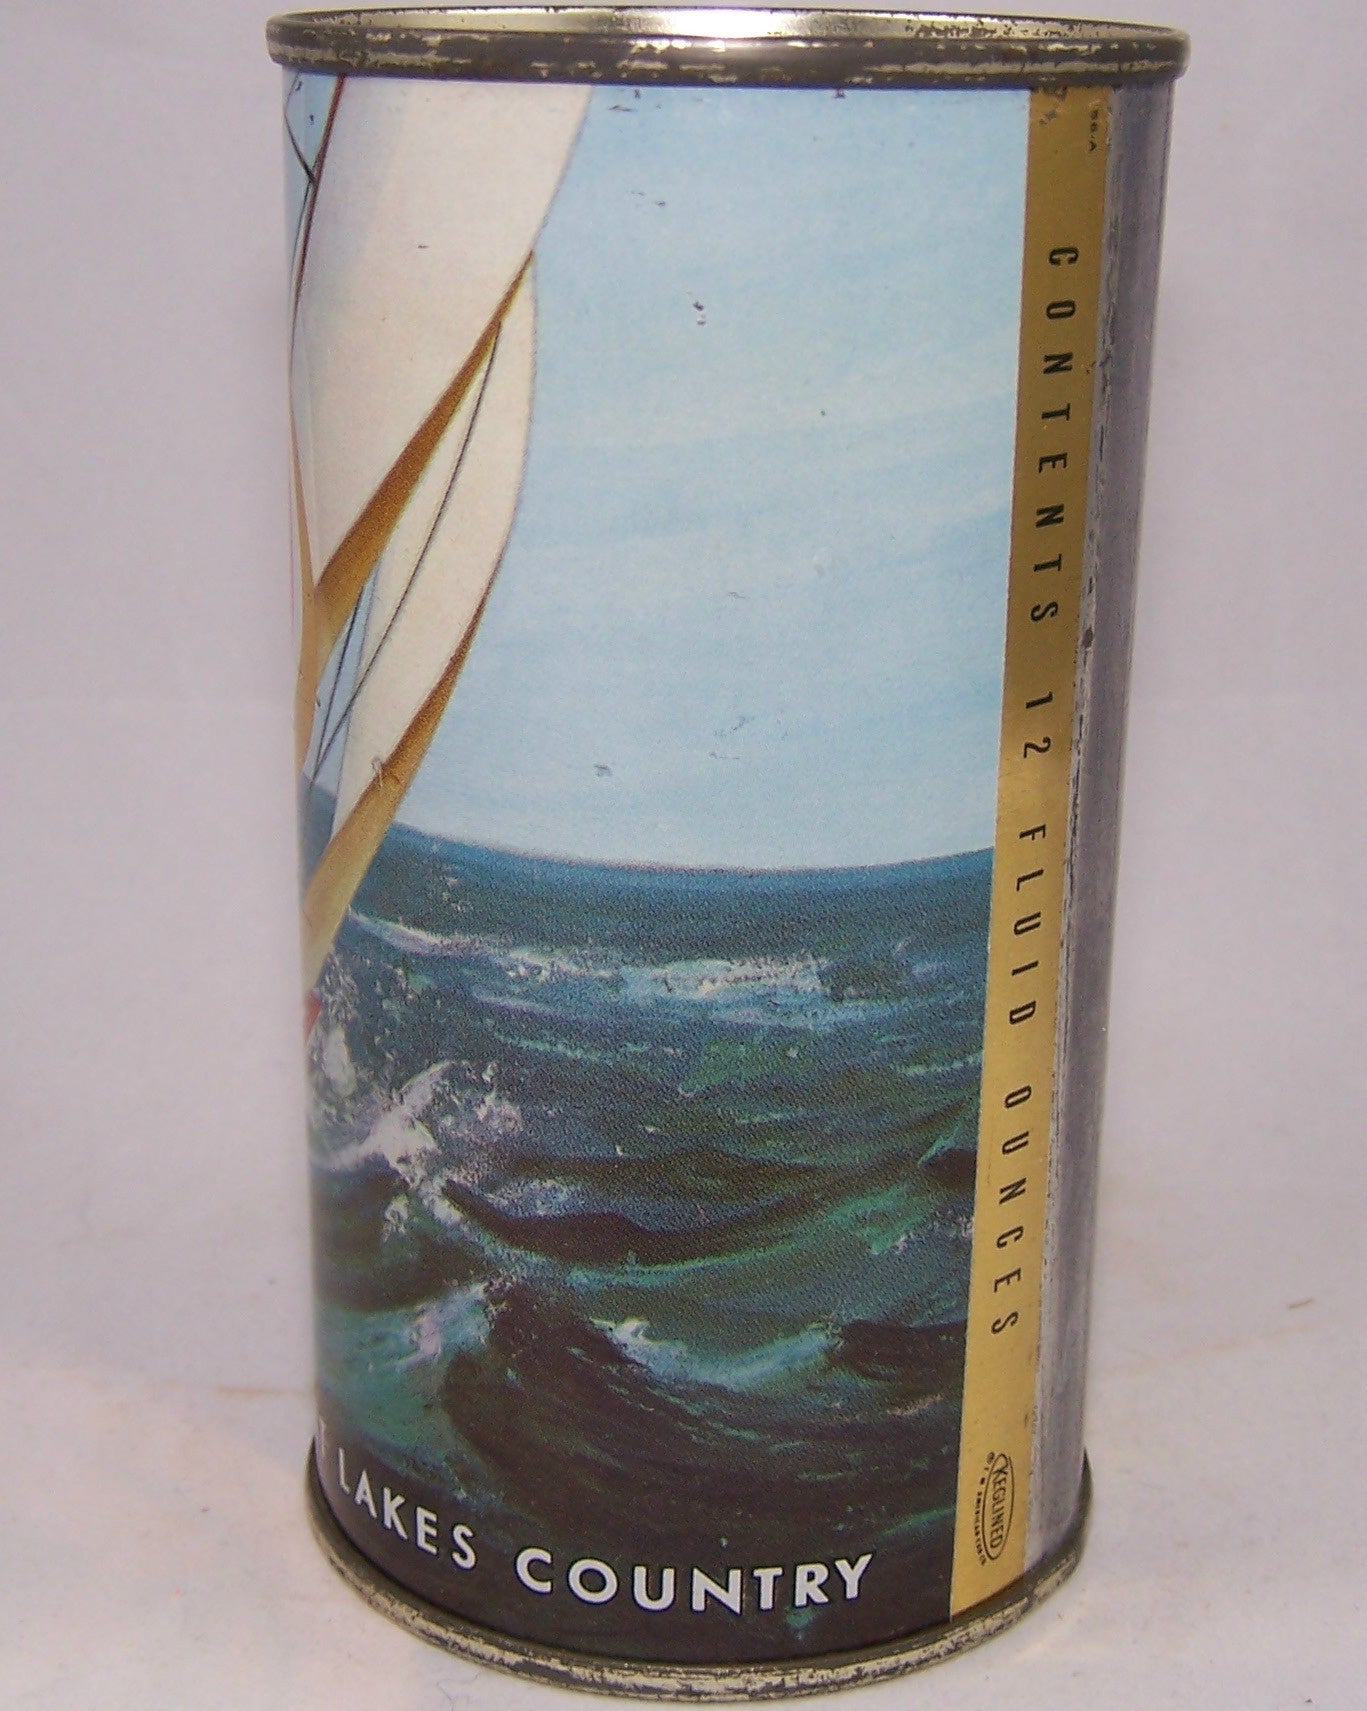 Pfeiffer (metallic) Premium Beer, USBC 114-08, Grade 1/ 1+ Sold on 10/10/15